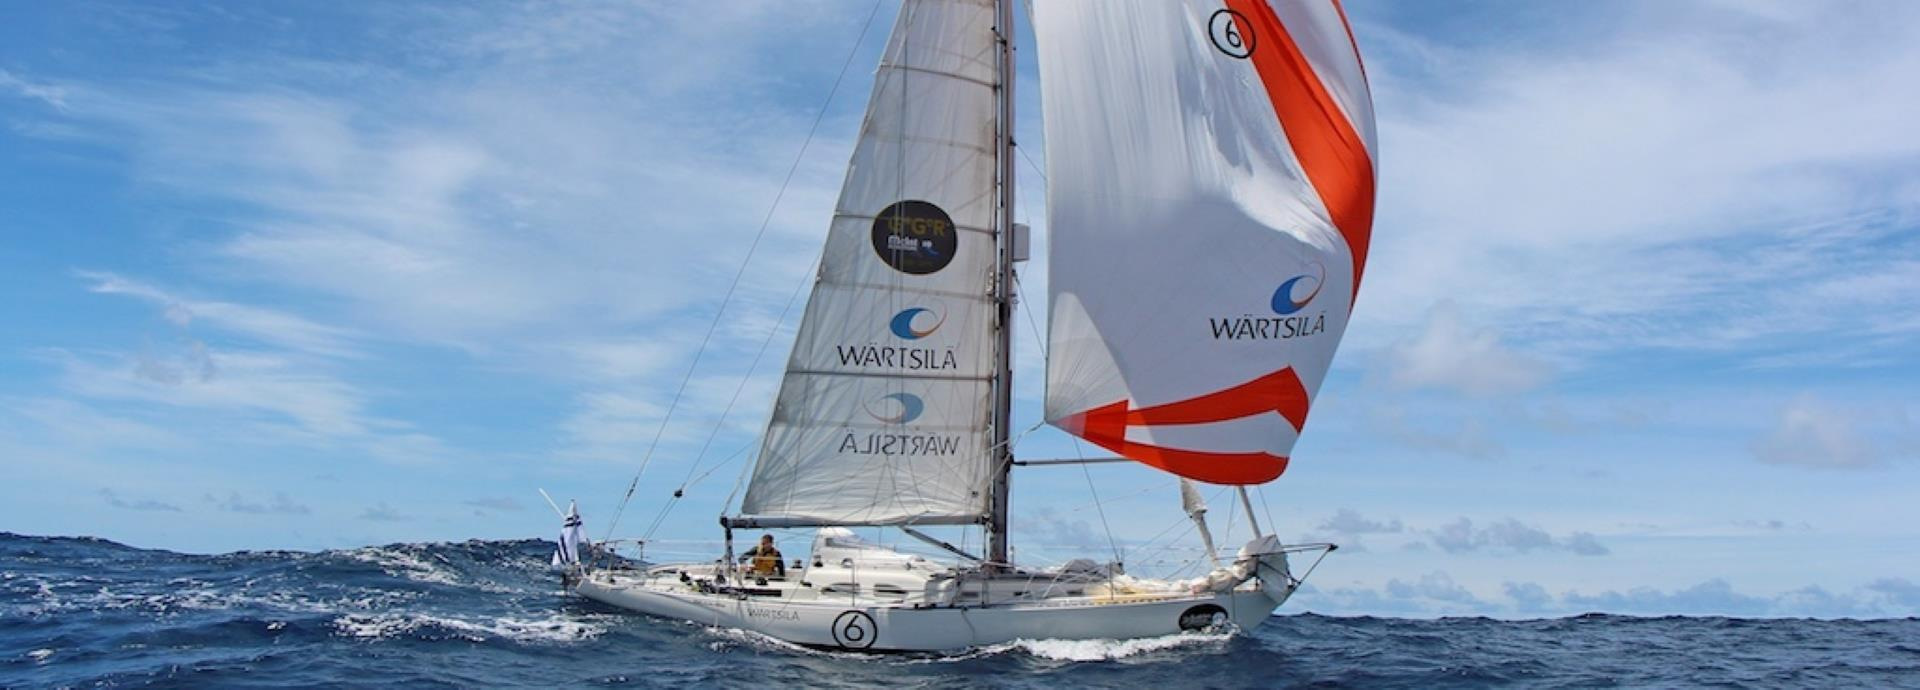 golden-globe-race-tapio-lehtinen-crosses-the-finishing-line_resized